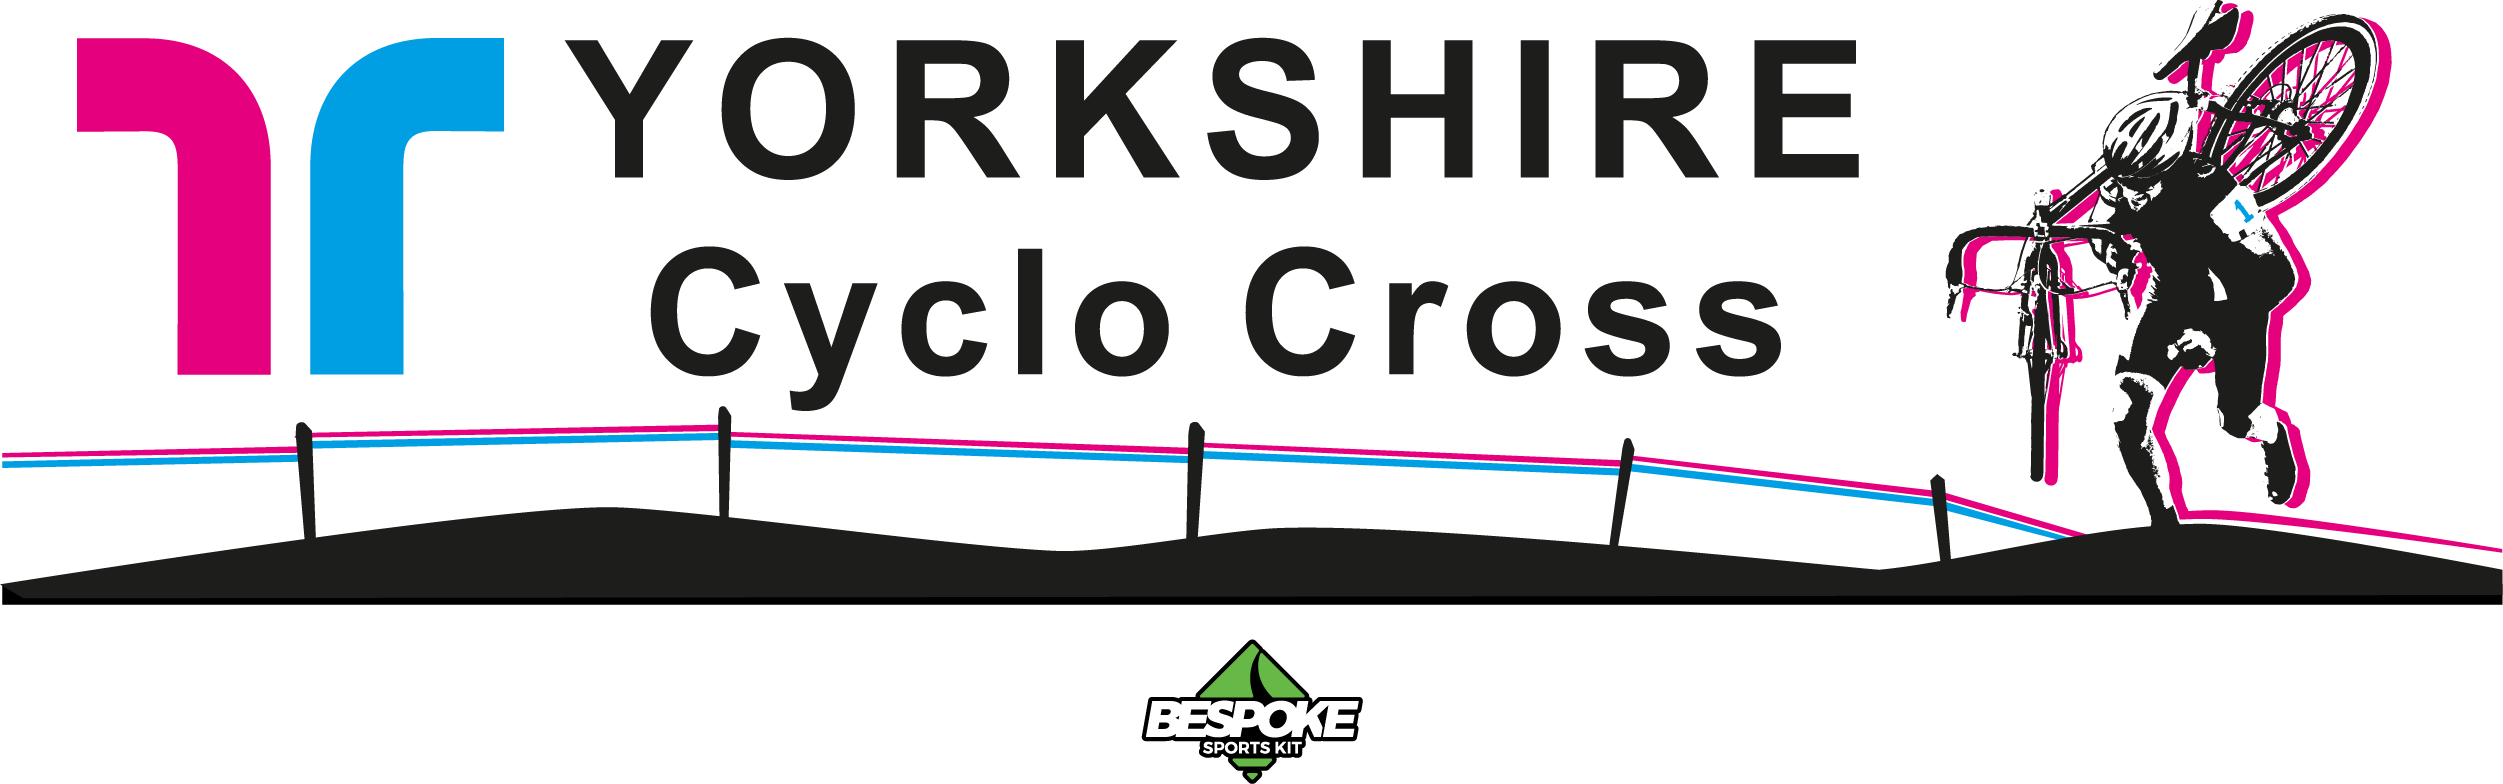 yorkshire-cyclo-cross-club-hero-1200x400.png